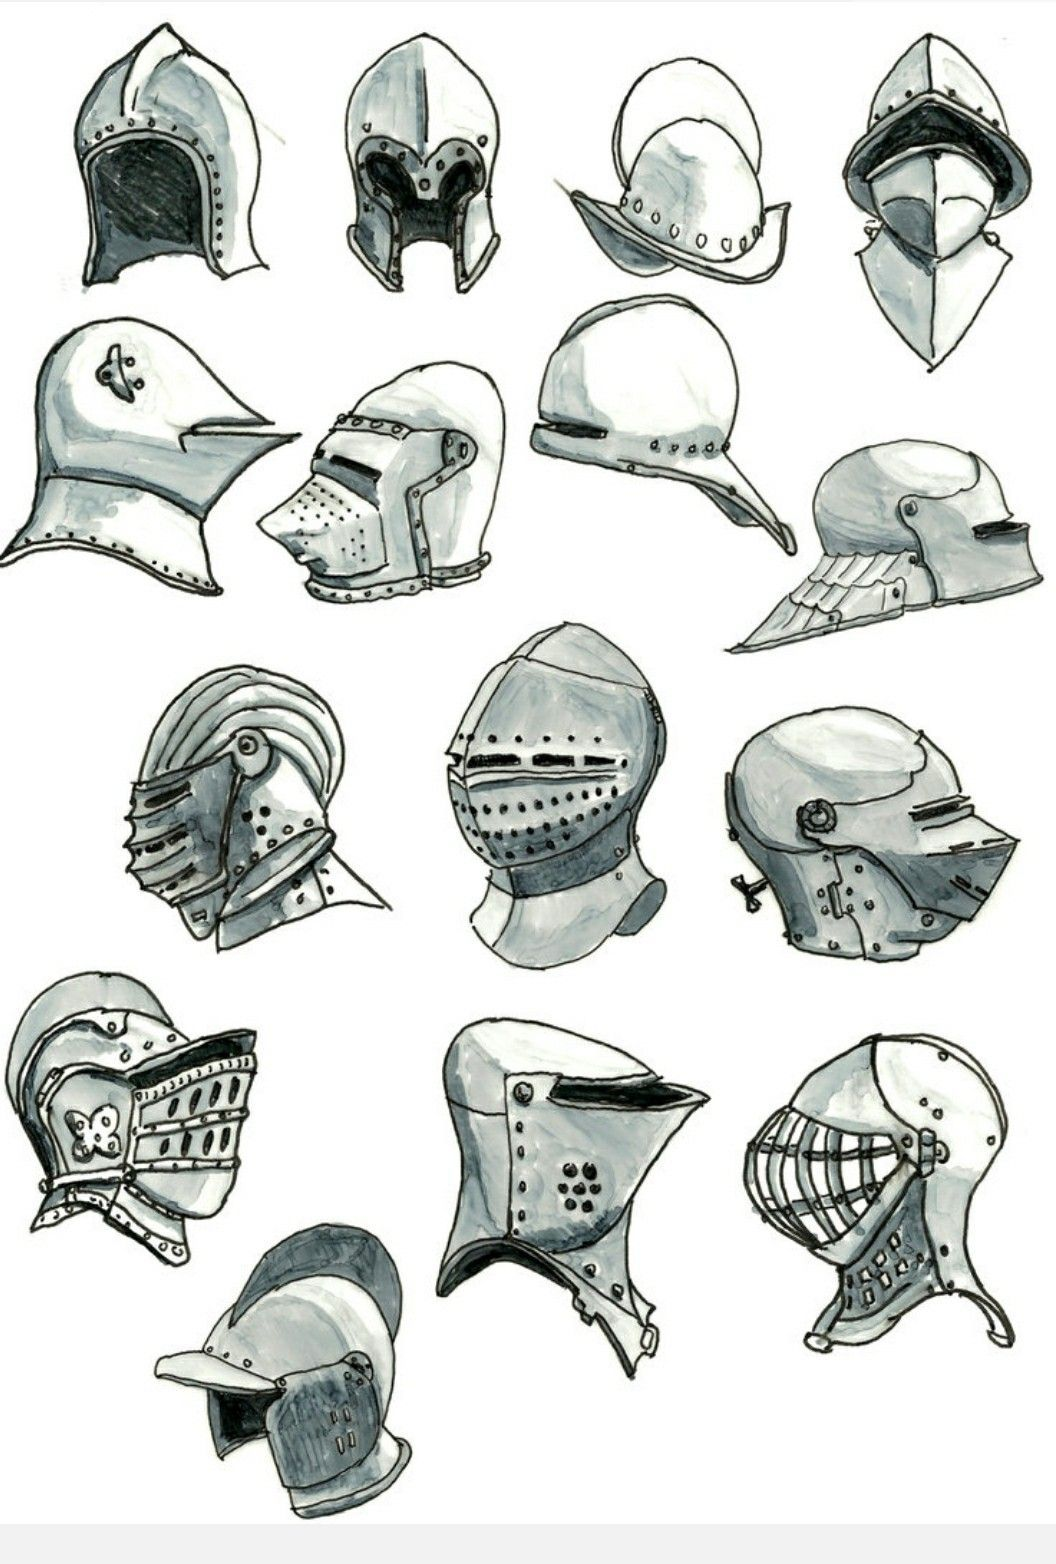 Medieval Helmet Drawing : medieval, helmet, drawing, Various, Helmets,, Century, Armor, Drawing,, Medieval, Concept, Characters